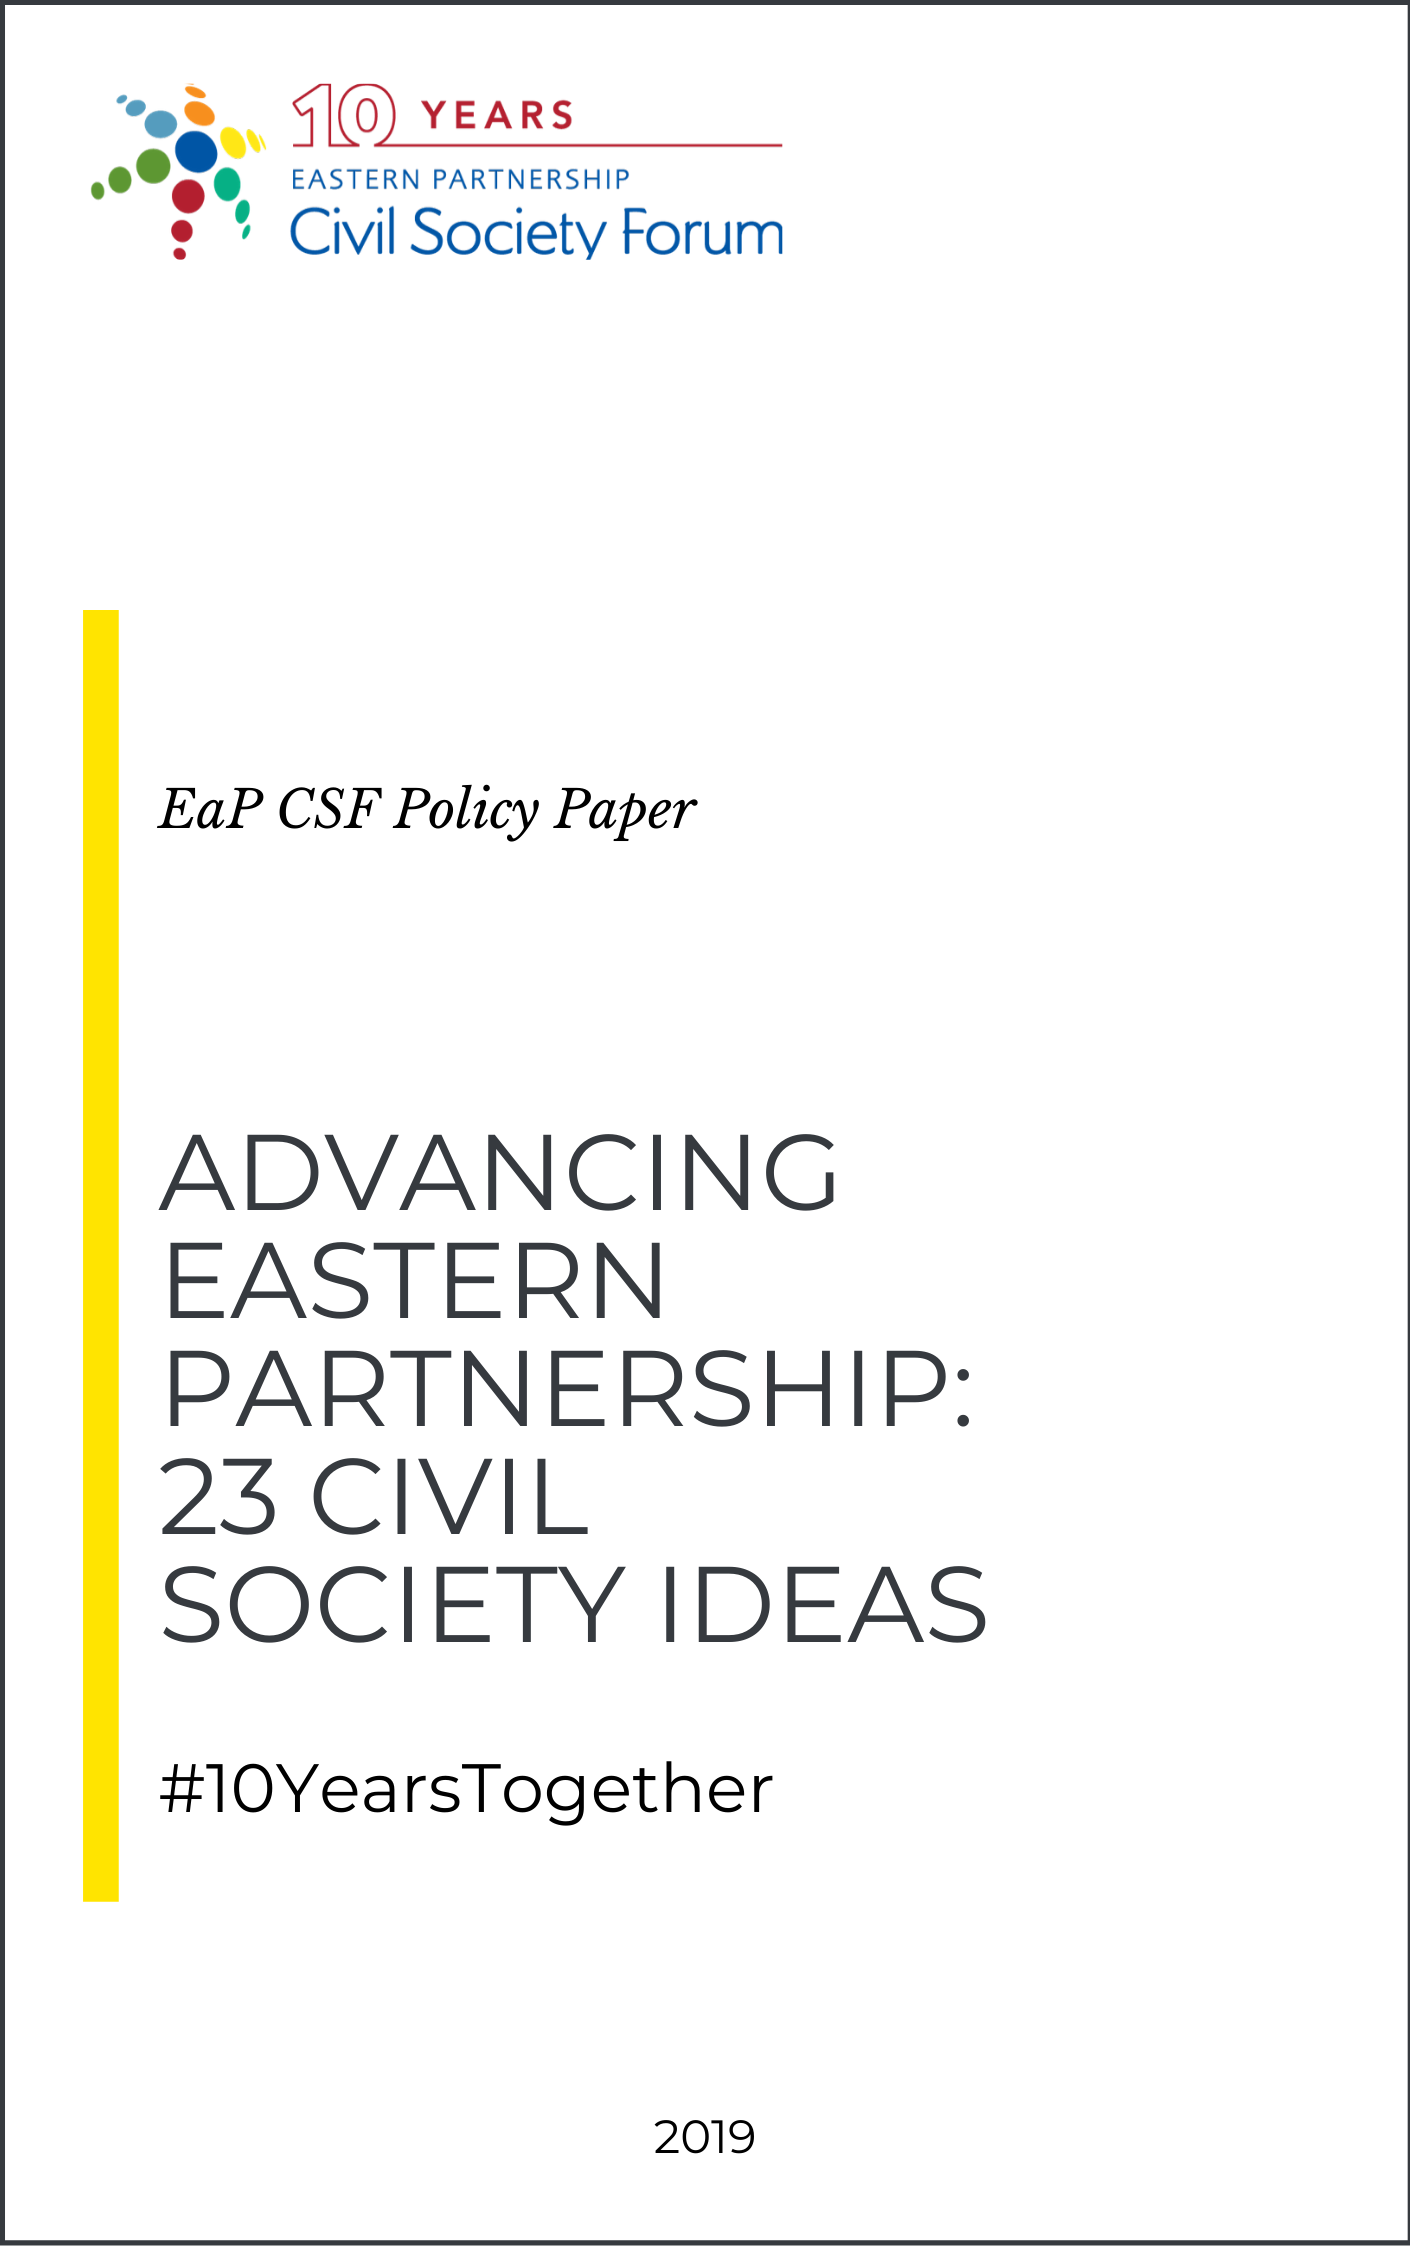 (English) Advancing Eastern Partnership: 23 Civil Society Ideas